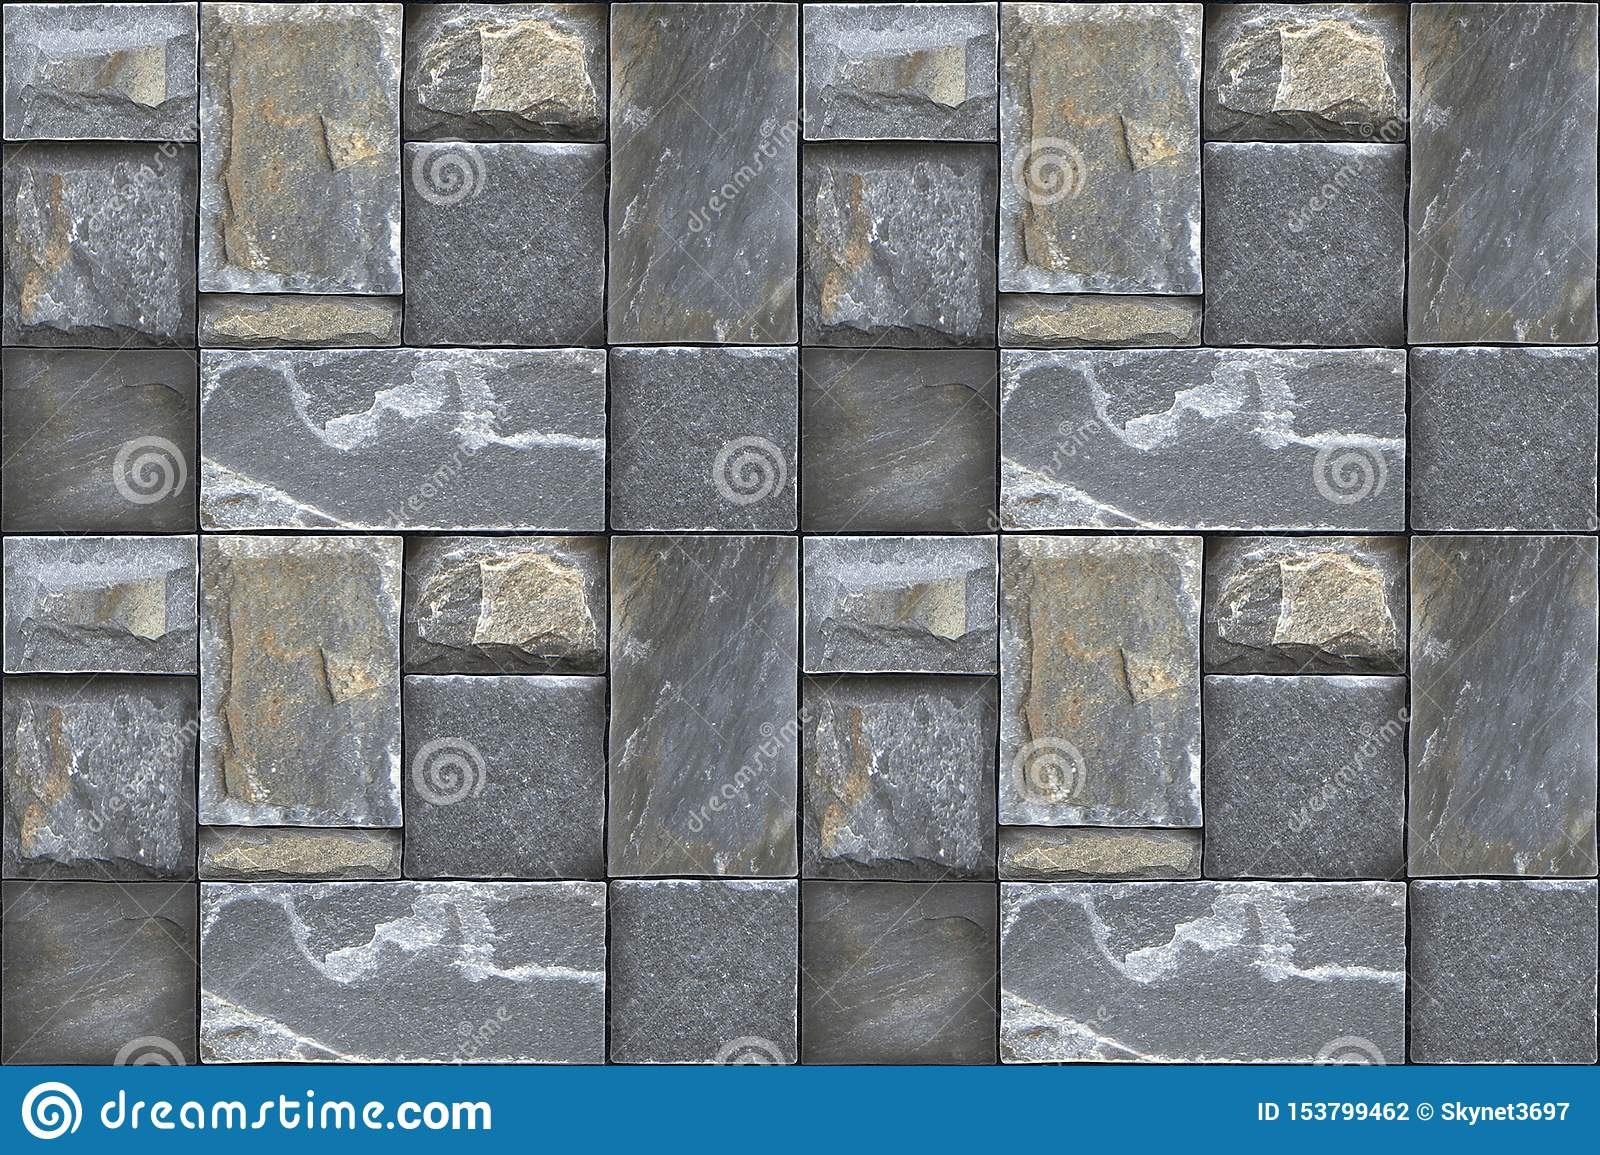 Wall Tiles Digital Elevation Tiles Stock Photo - Image of